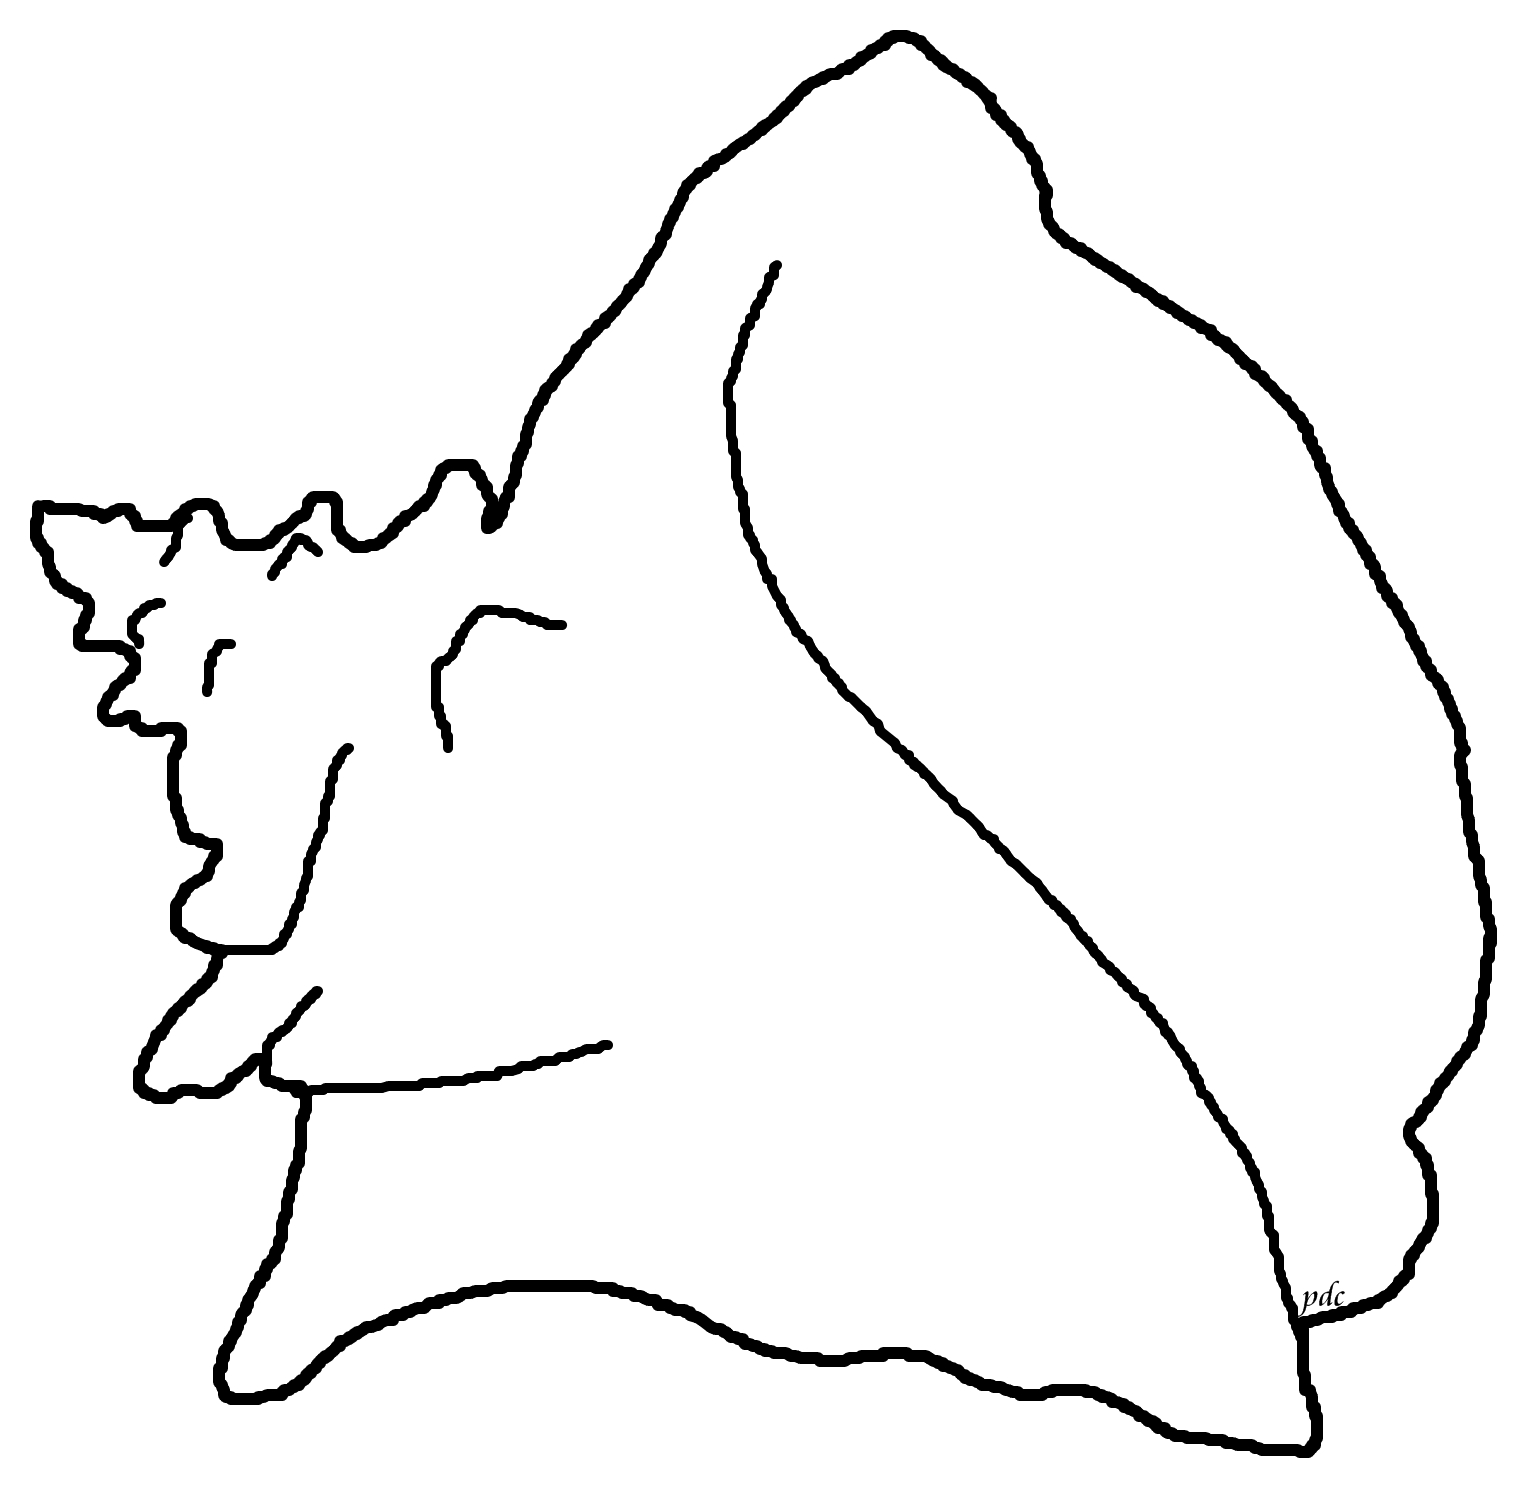 Free Conch Shell Drawing, Download Free Clip Art, Free Clip Art on.